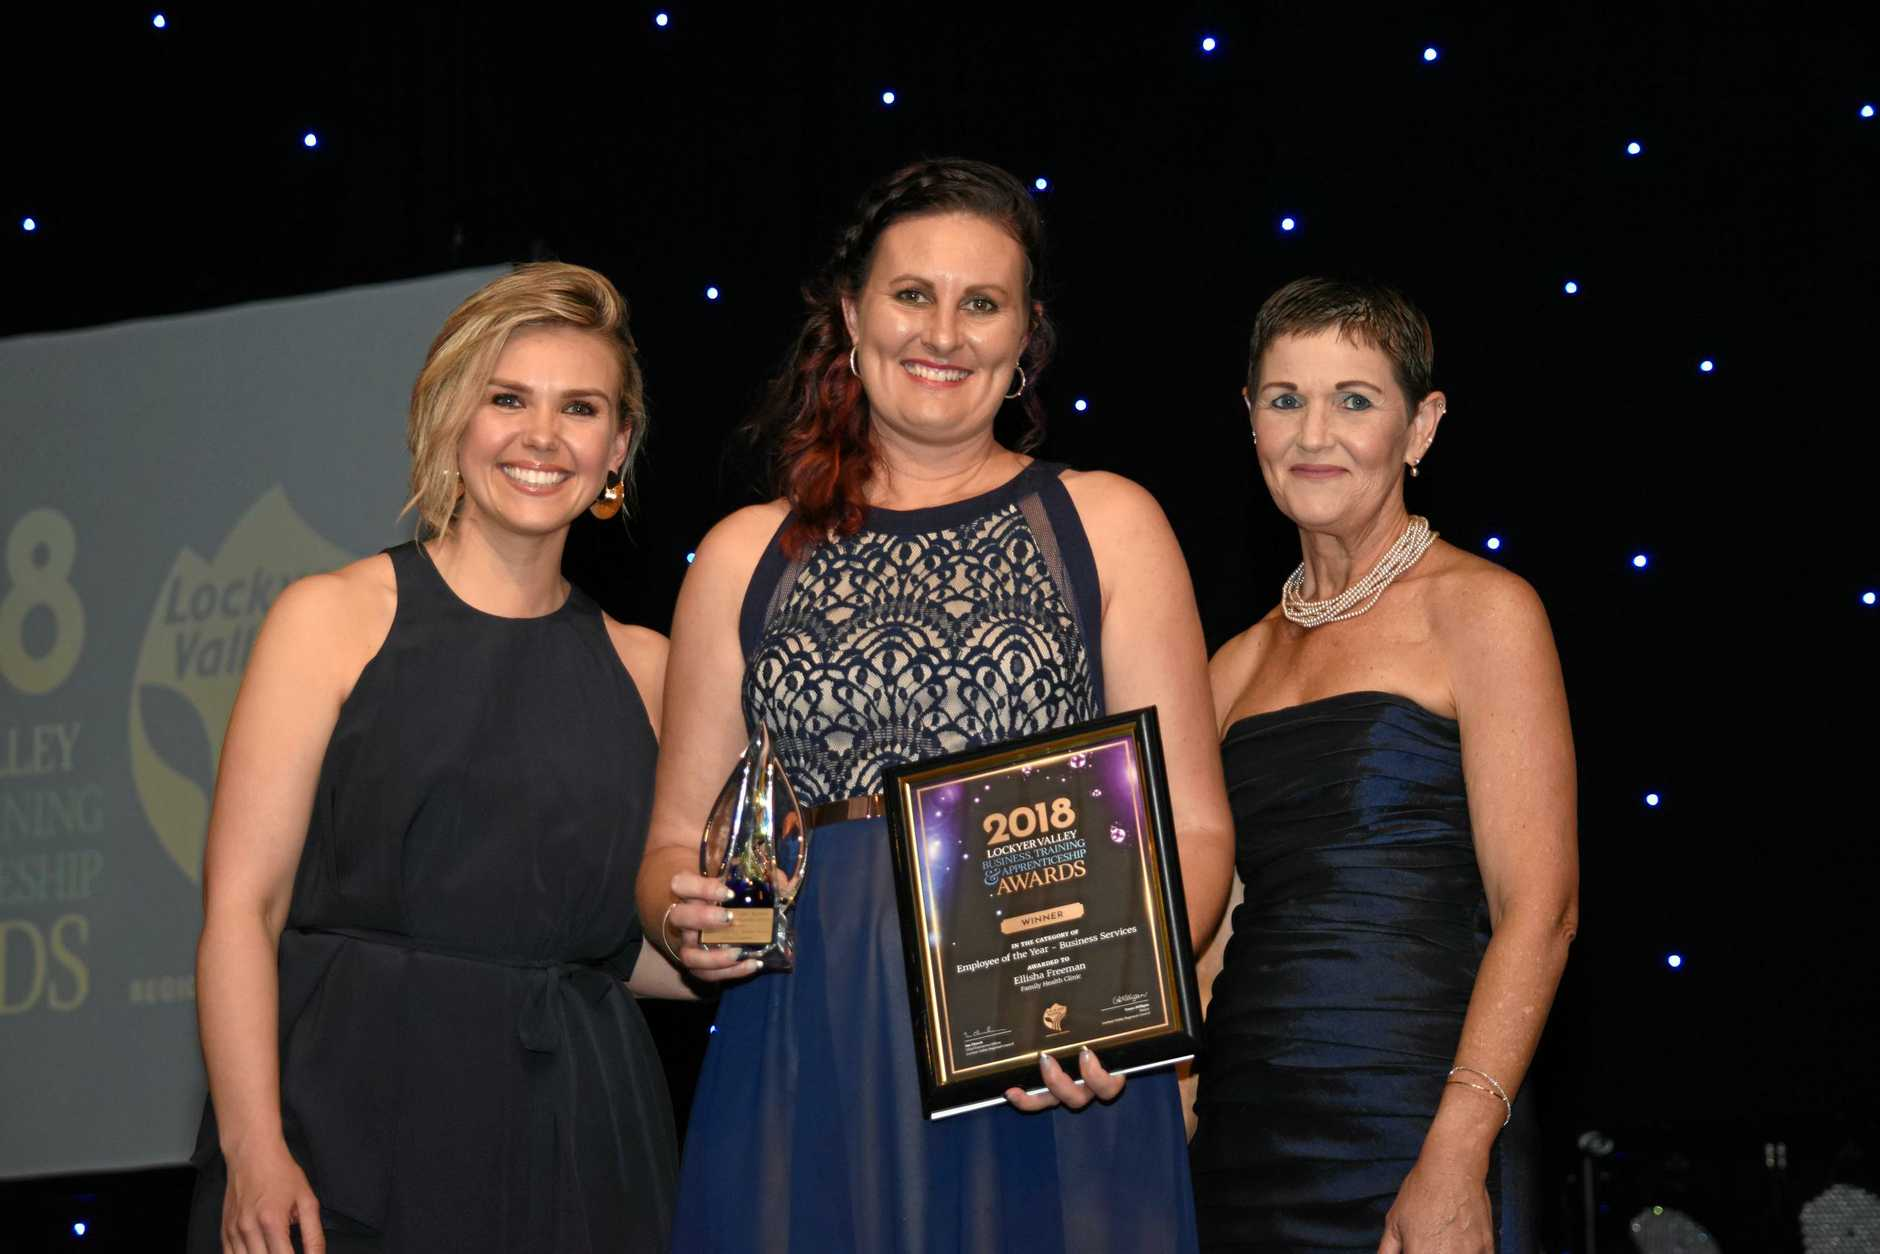 Employee of the year Ellisha Freeman (centre) with host Edwina Bartholomew and LVRC mayor Tanya Milligan, at the 2018 Lockyer Valley Business, Training and Apprenticeship Awards, Saturday, October 20, 2018.